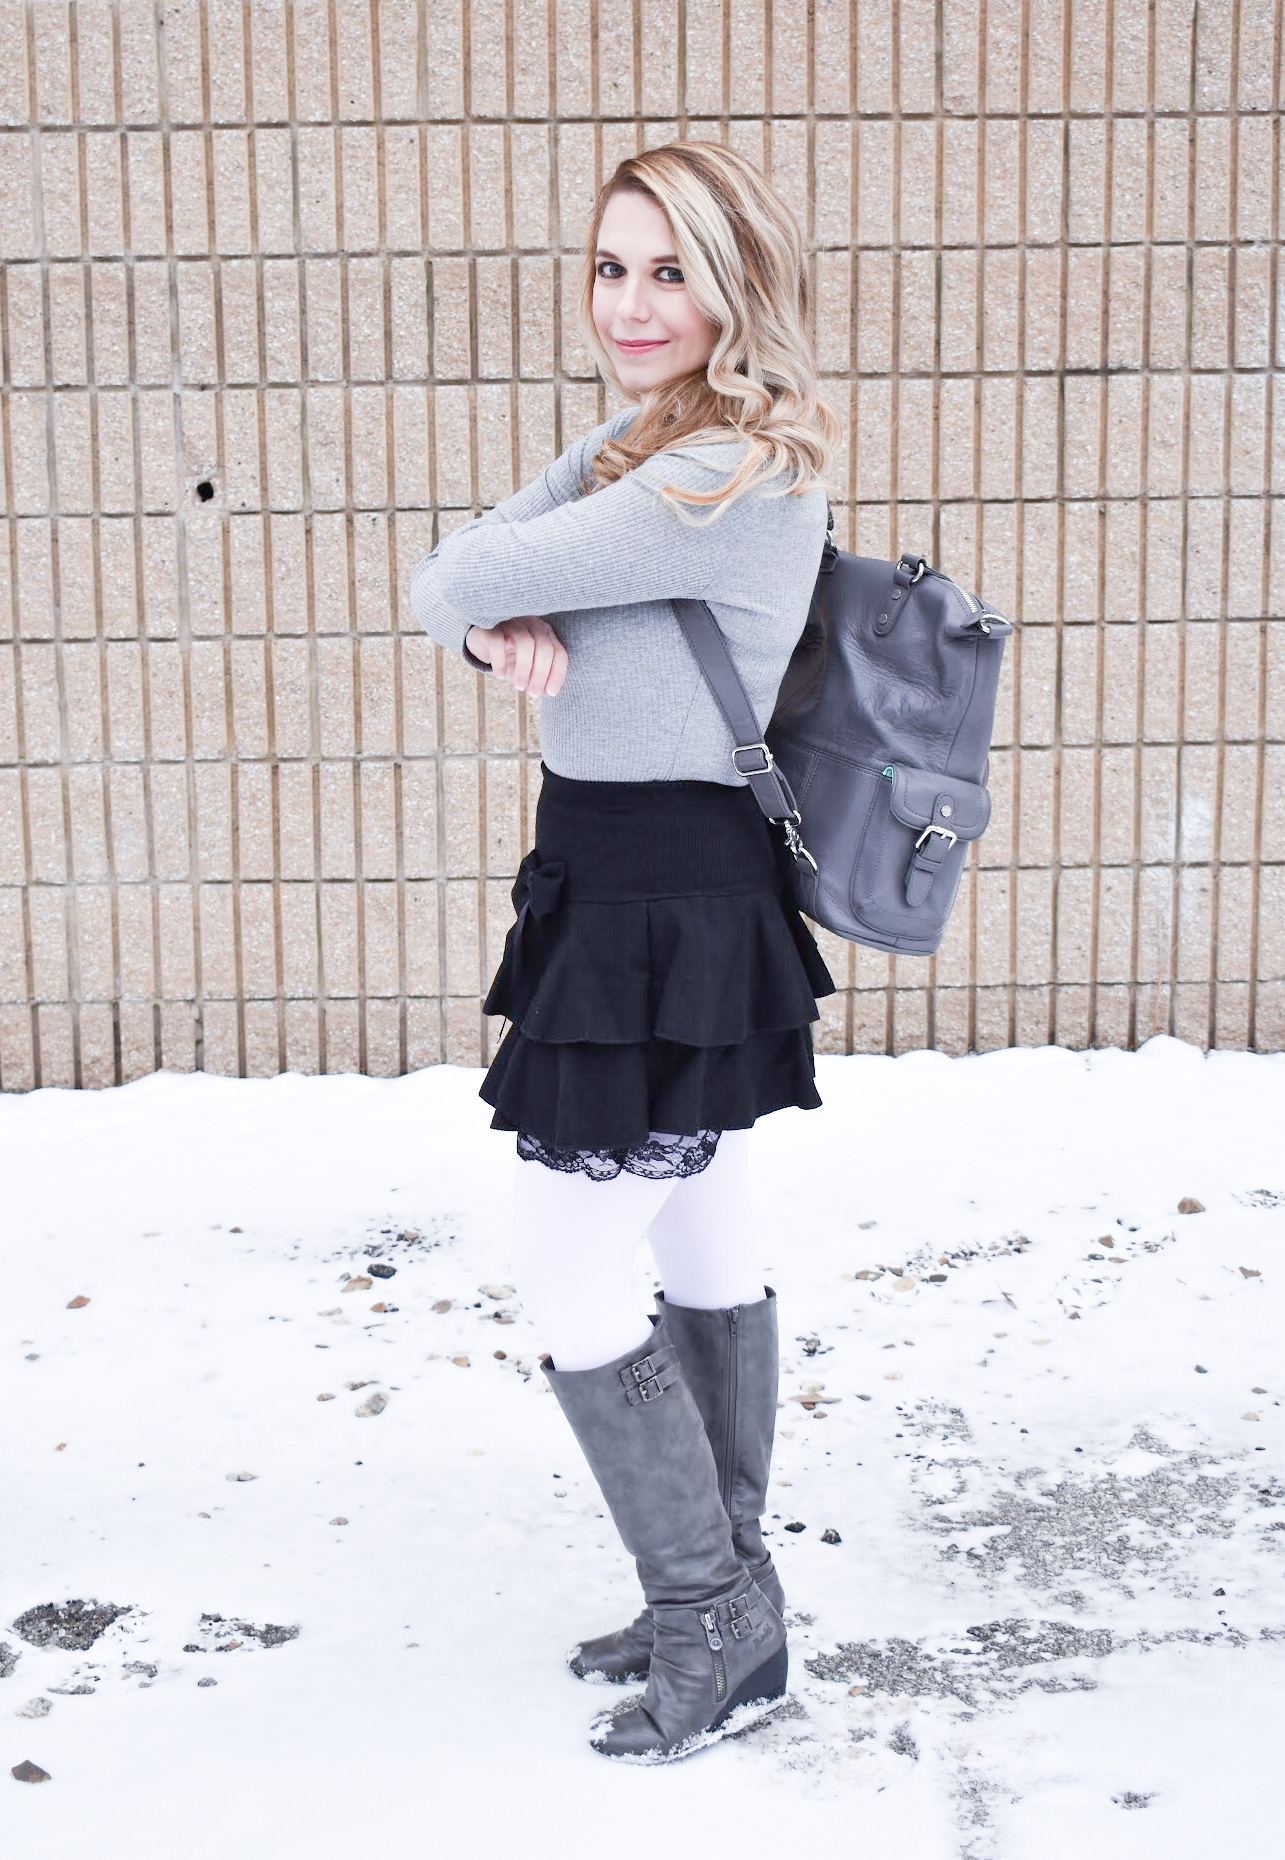 Fashion blogger COVET by tricia styles a ruffled black mini skirt with white tights, a grey bodysuit, grey wedge boots ,and a gorgeous Lily Jade diaper bag. This black mini skirt with ruffles is an affordable statement piece for your wardrobe. Check out this cute winter date night look from Kansas City fashion blogger COVET by tricia.